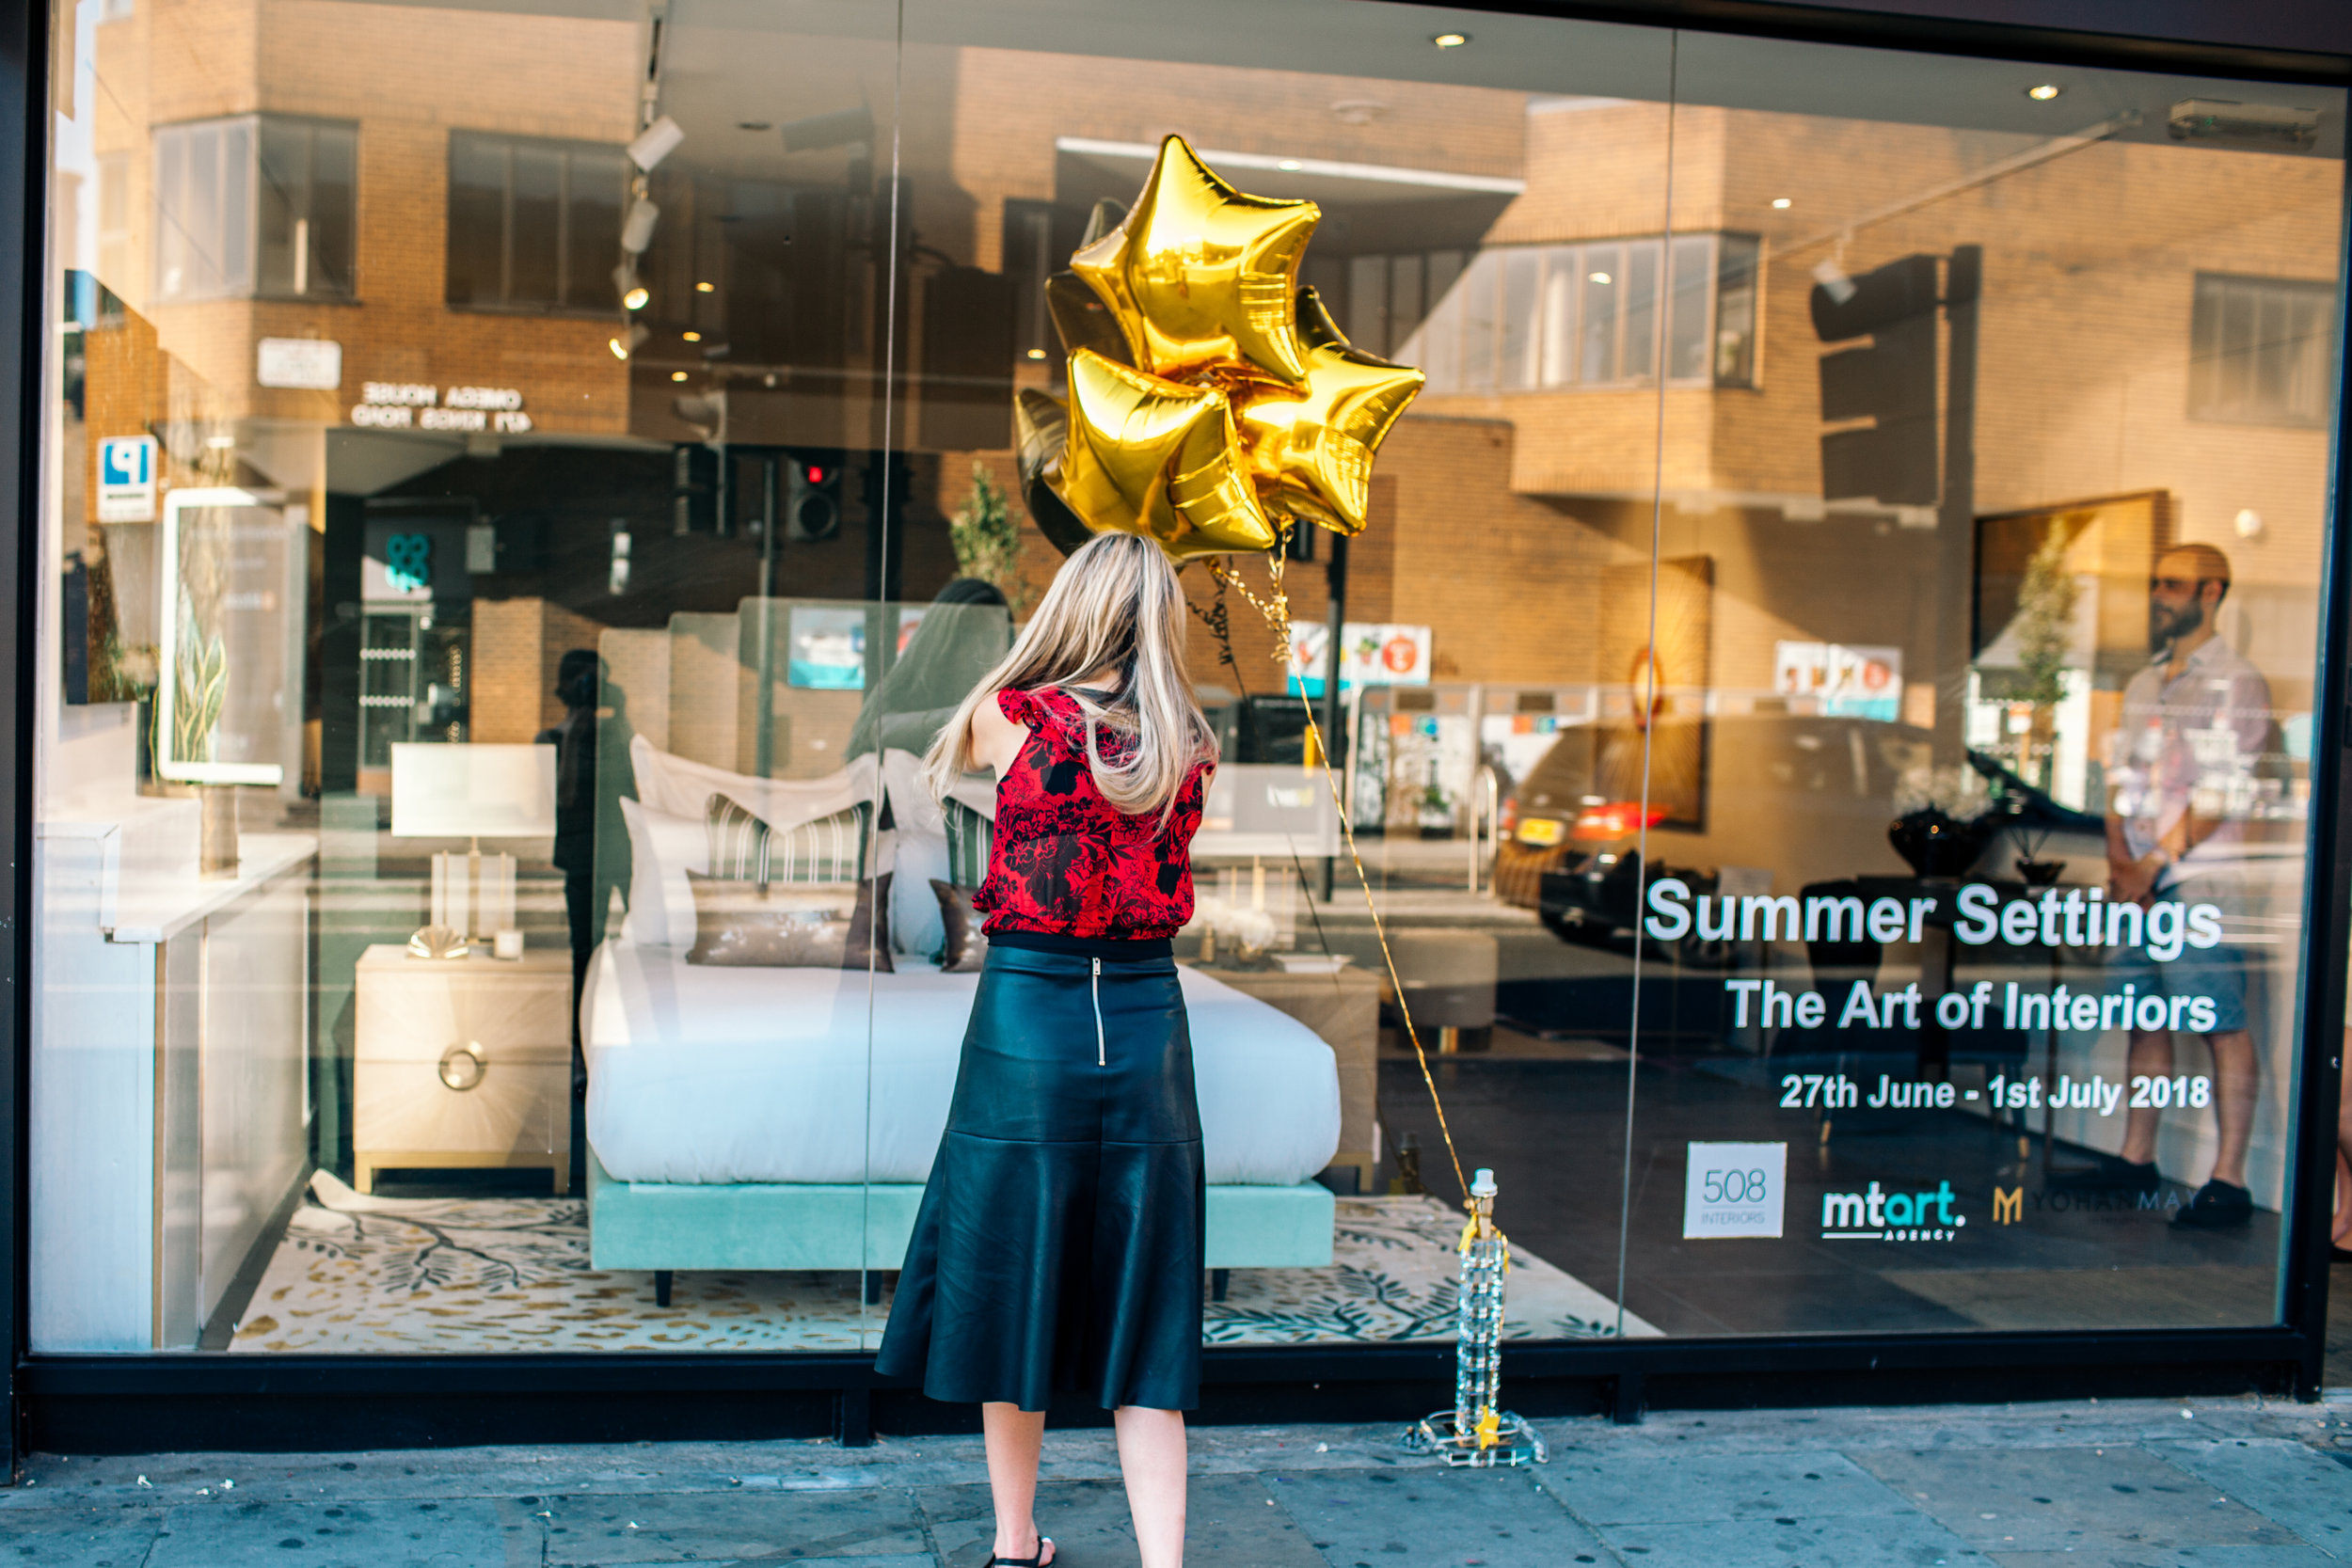 III.Created a Chelsea pop-up shop with our partners 508 Gallery& MTArt Agency -